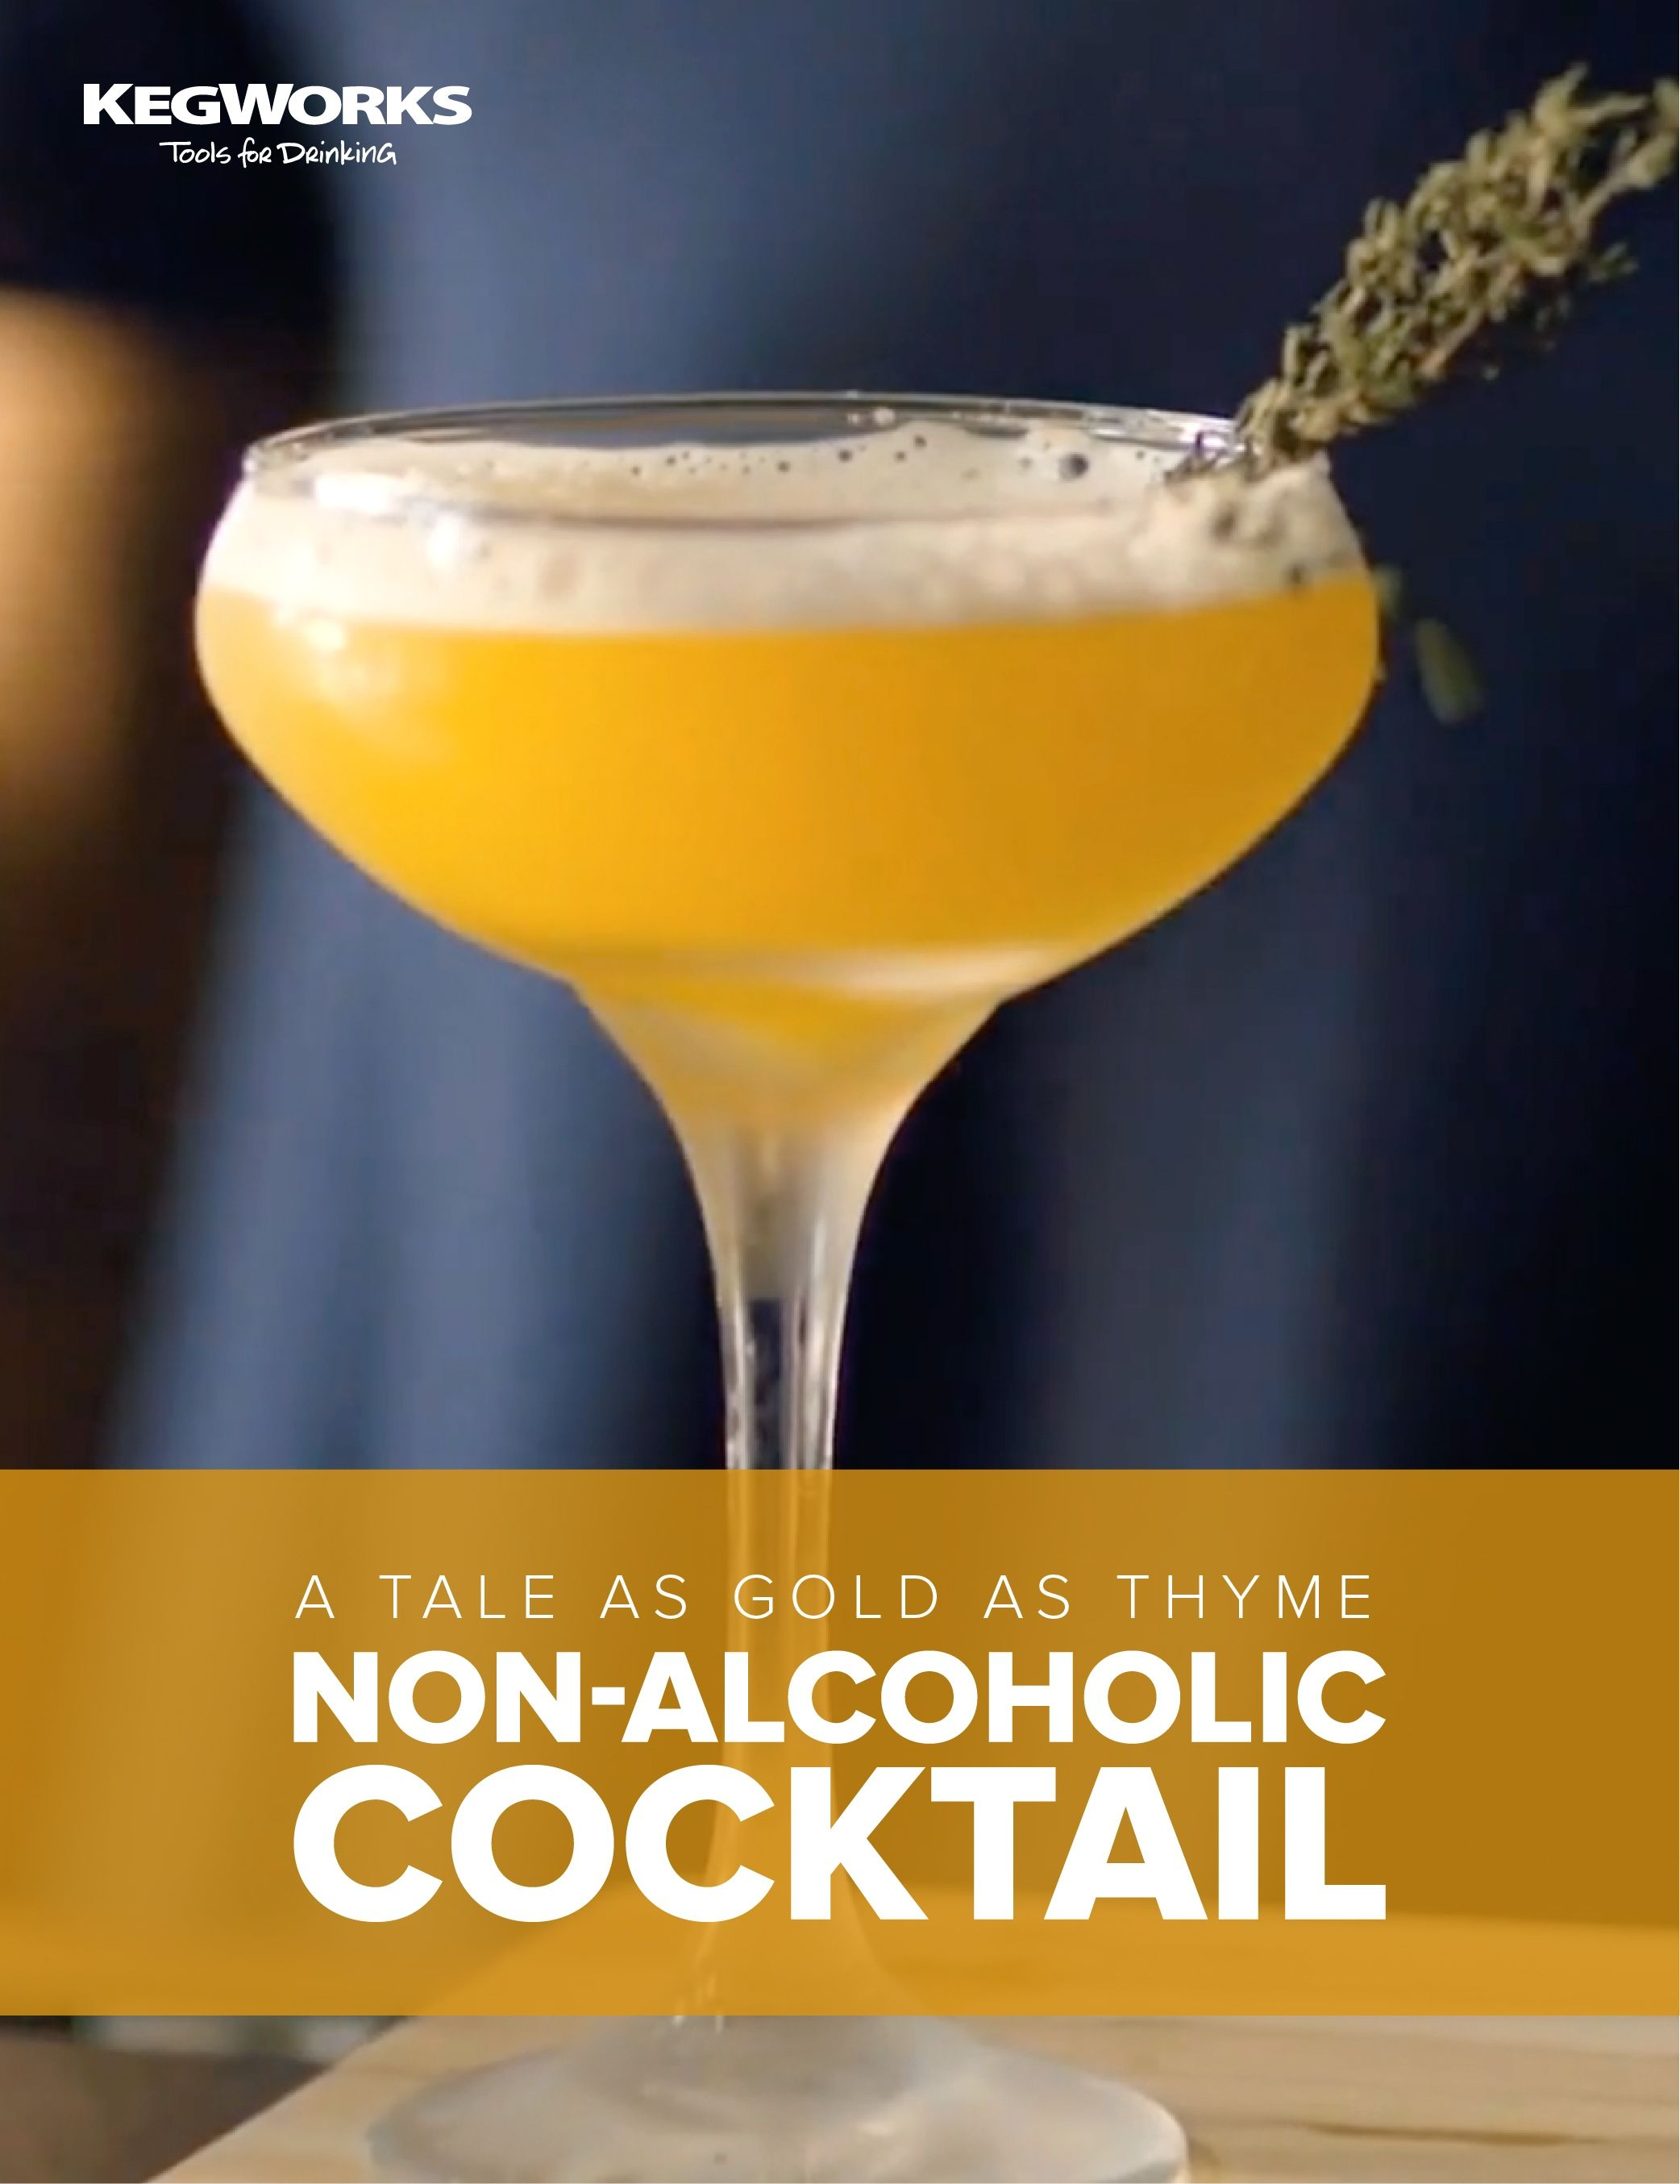 A tale as gold as thyme nonalcoholic cocktail recipe